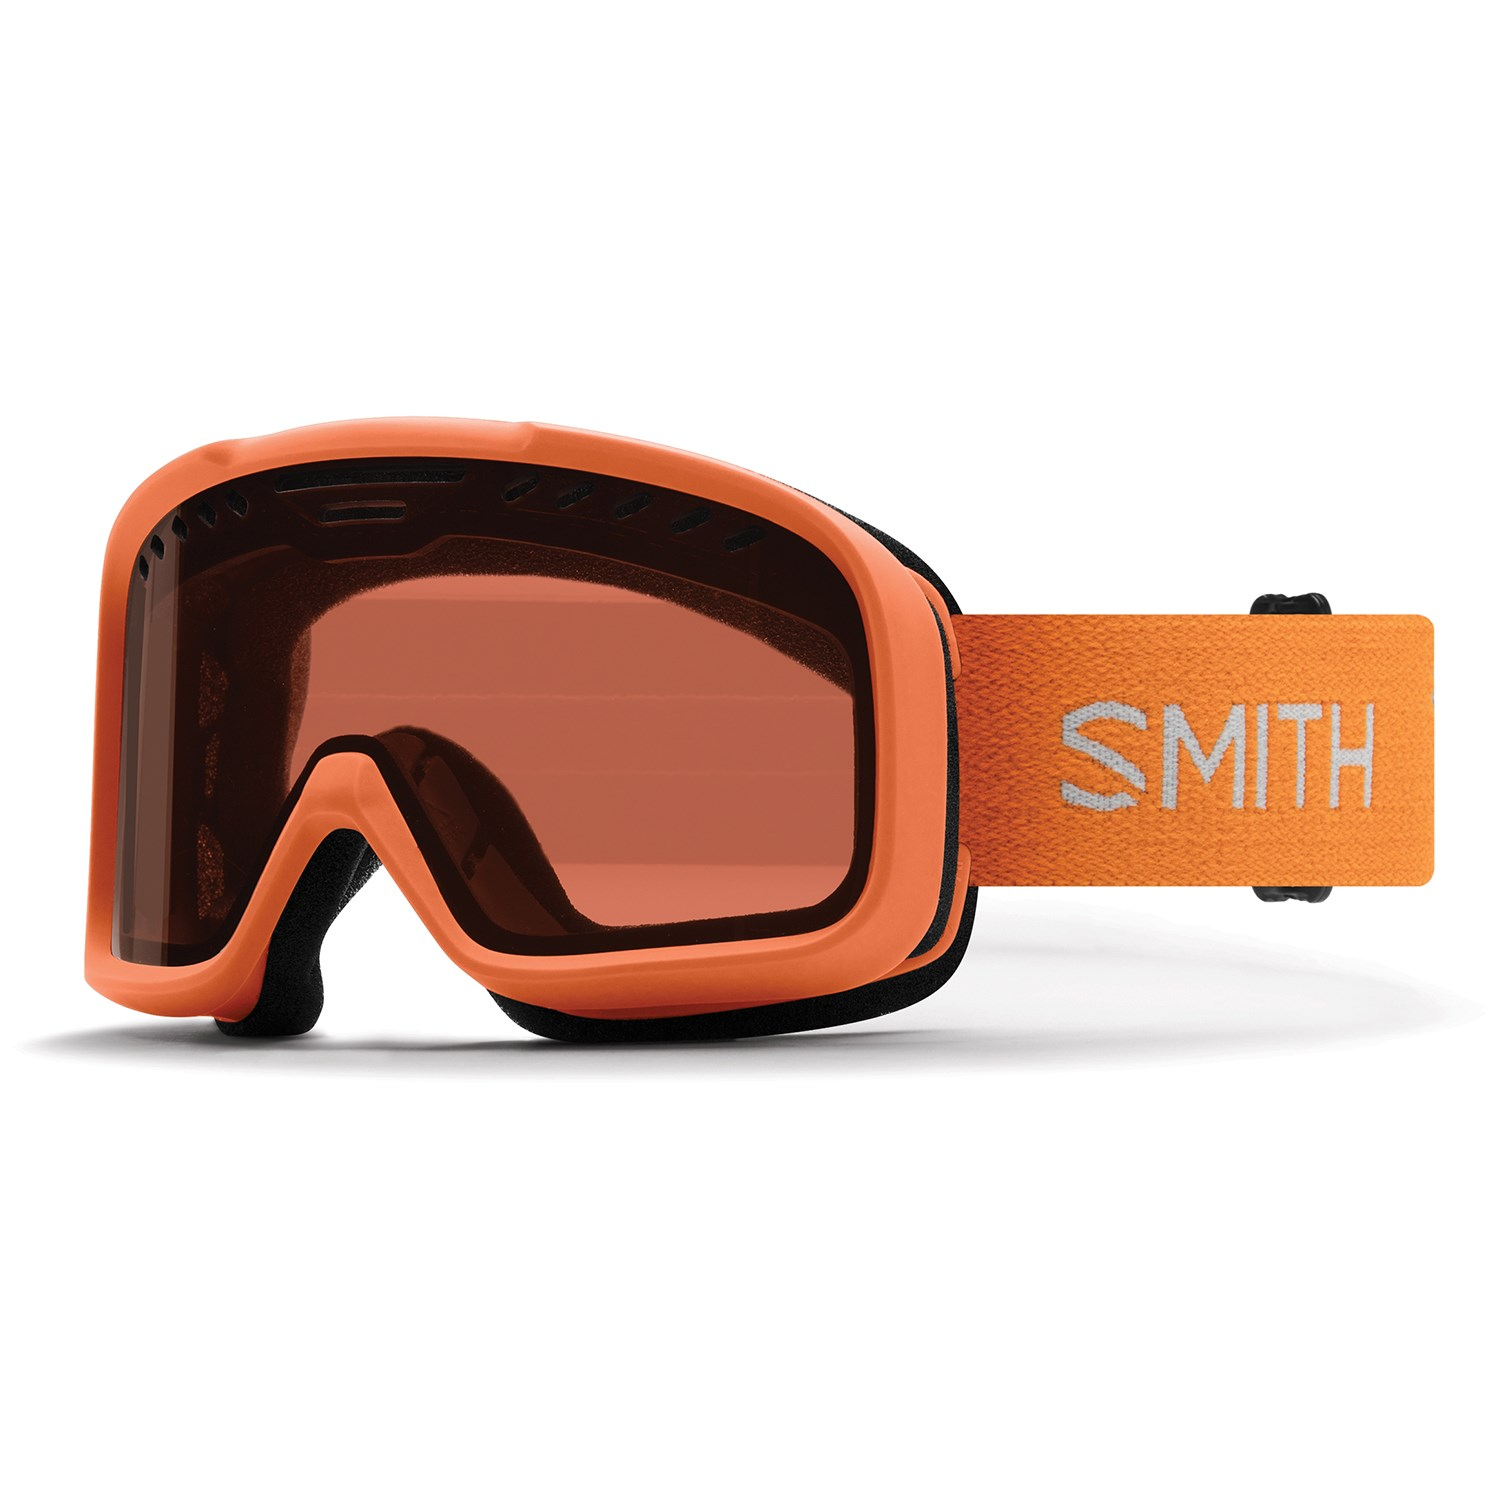 08b8d5a6b72ee Smith Project Goggles